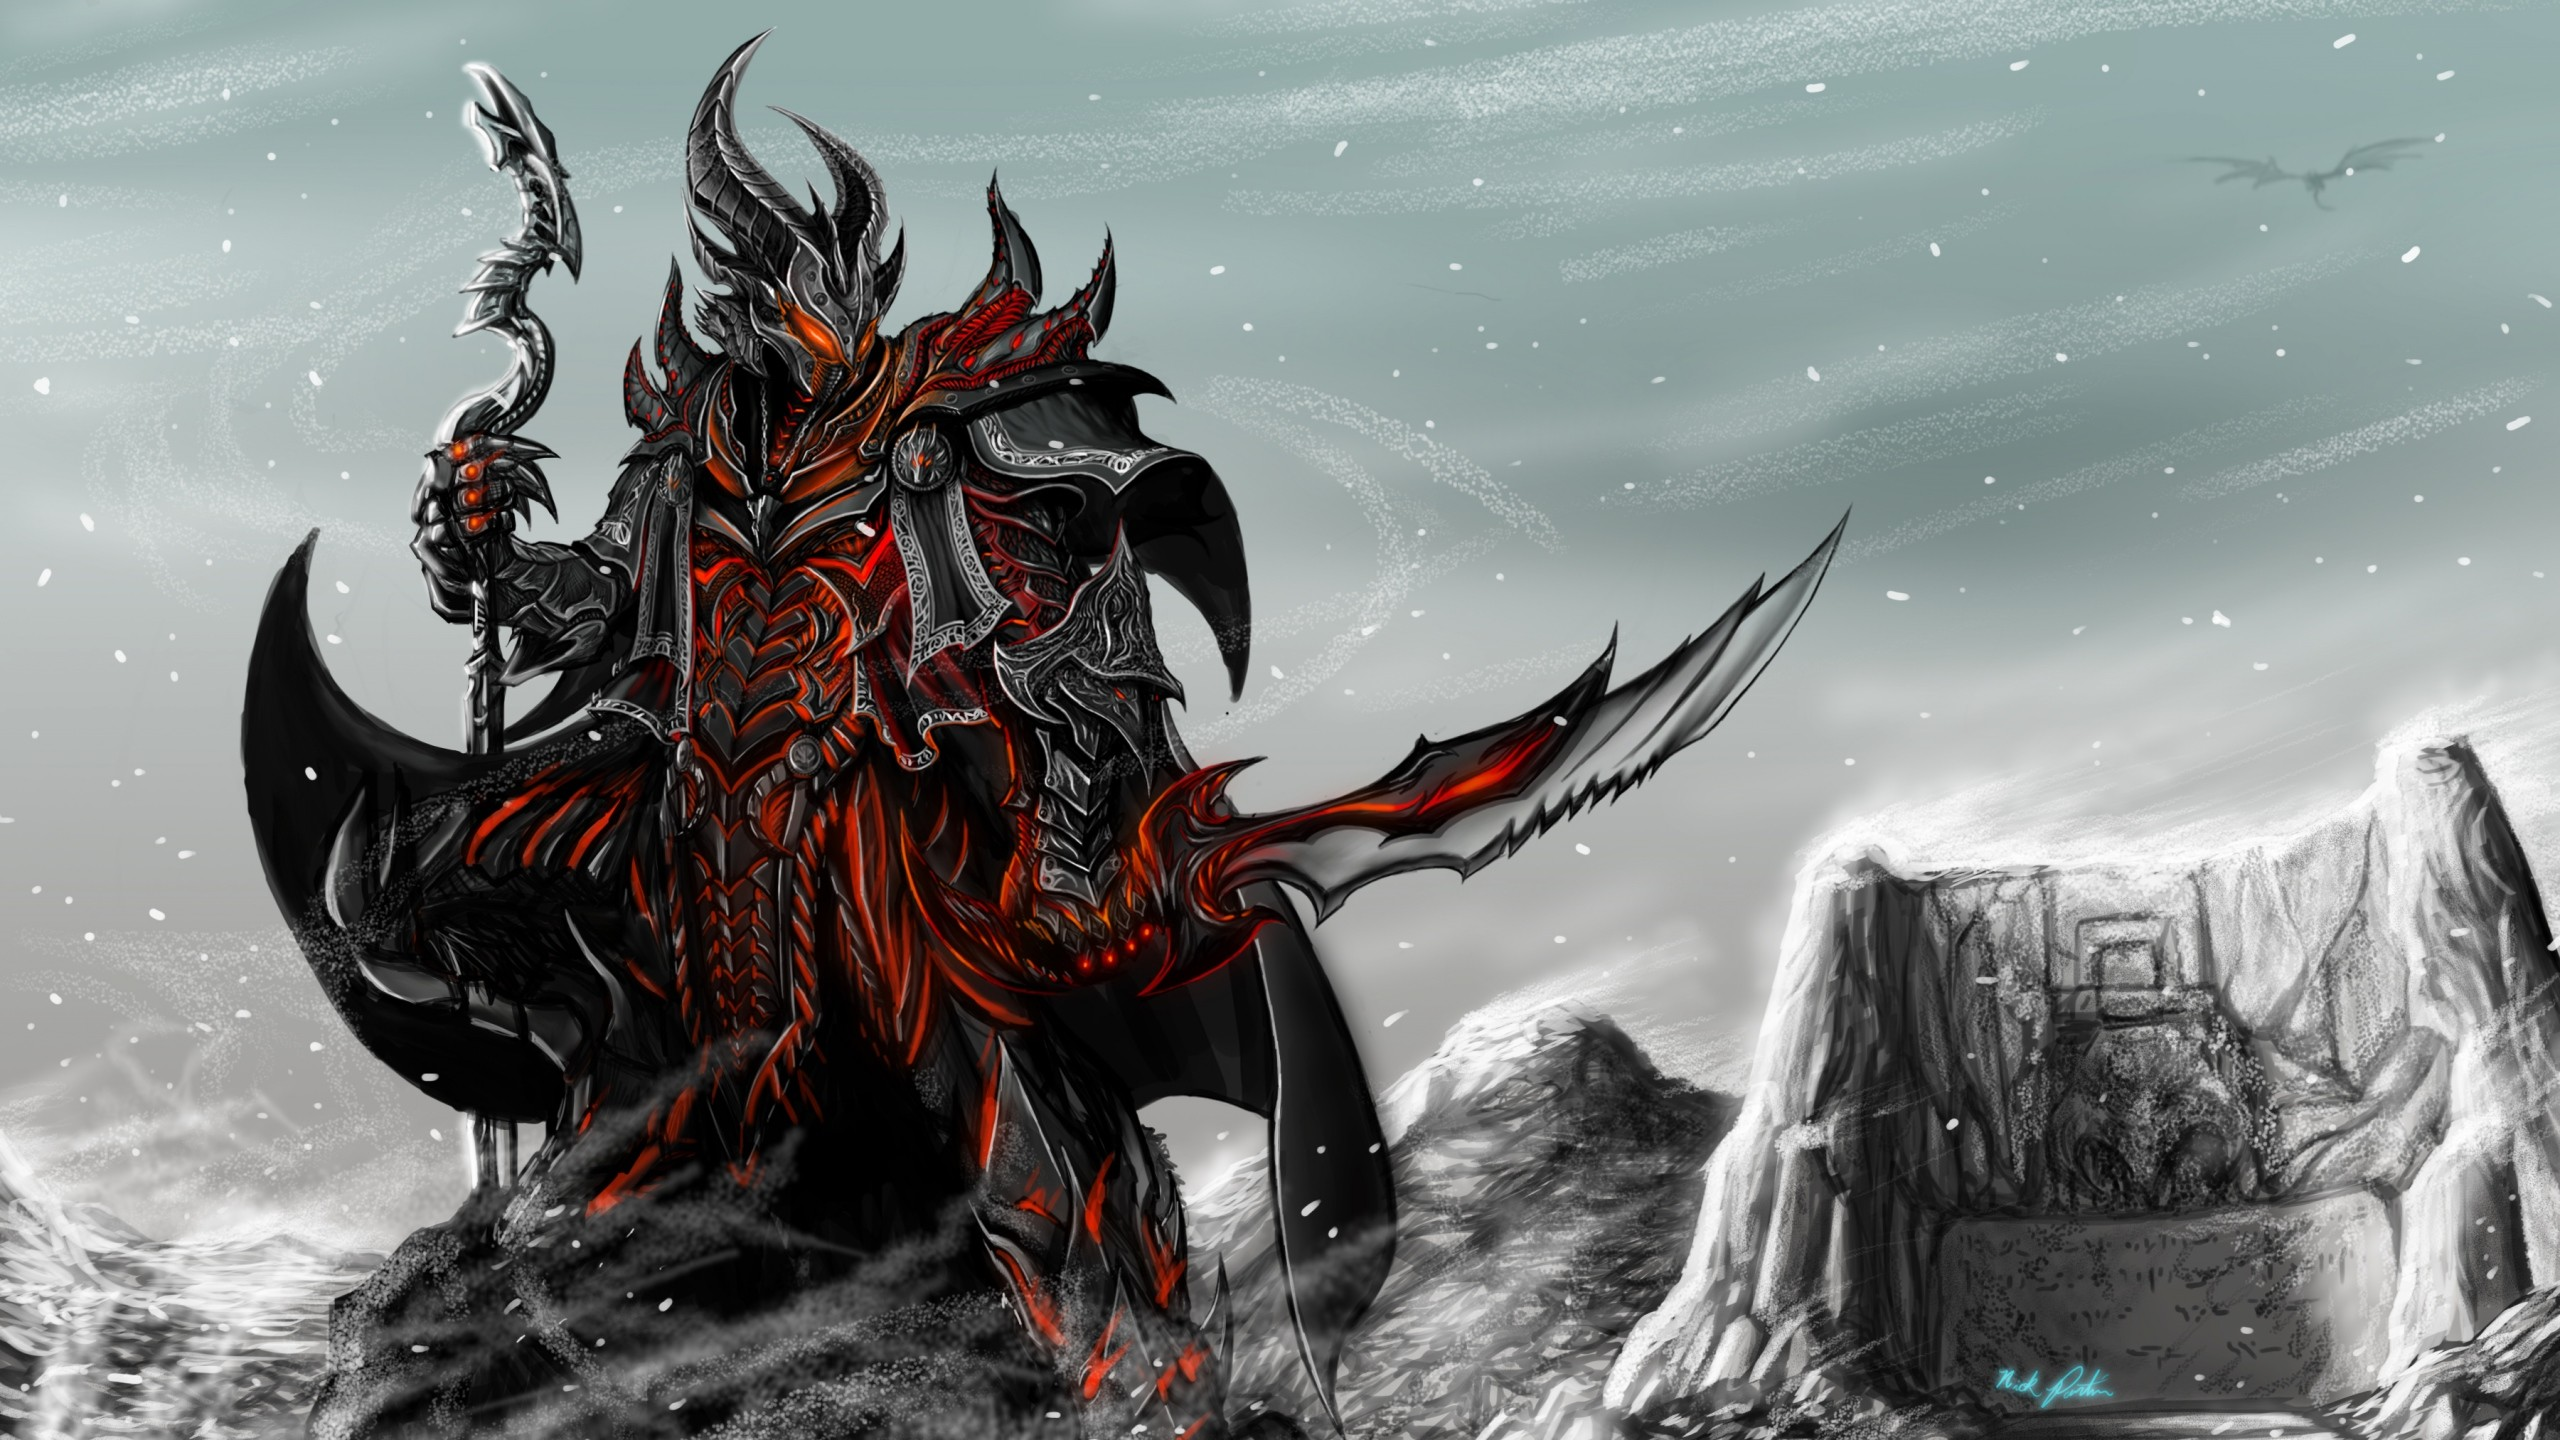 2560x1440  Wallpaper skyrim, game, art, rider, armor, staff, sword